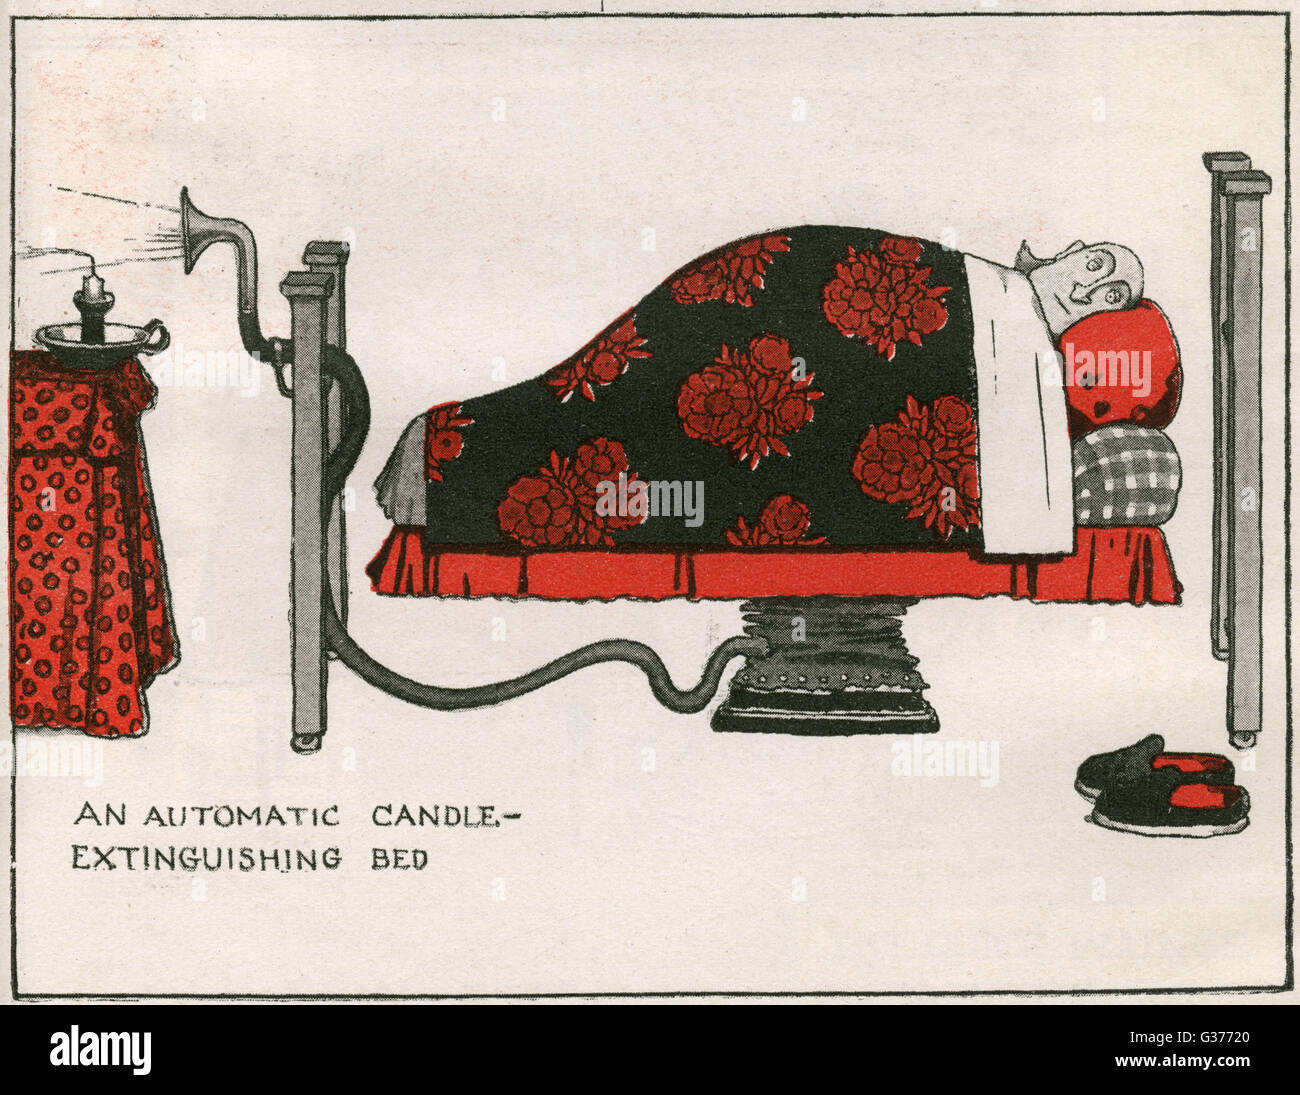 An Automatic Candle-Extinguishing Bed.     Date: 1919 - Stock Image